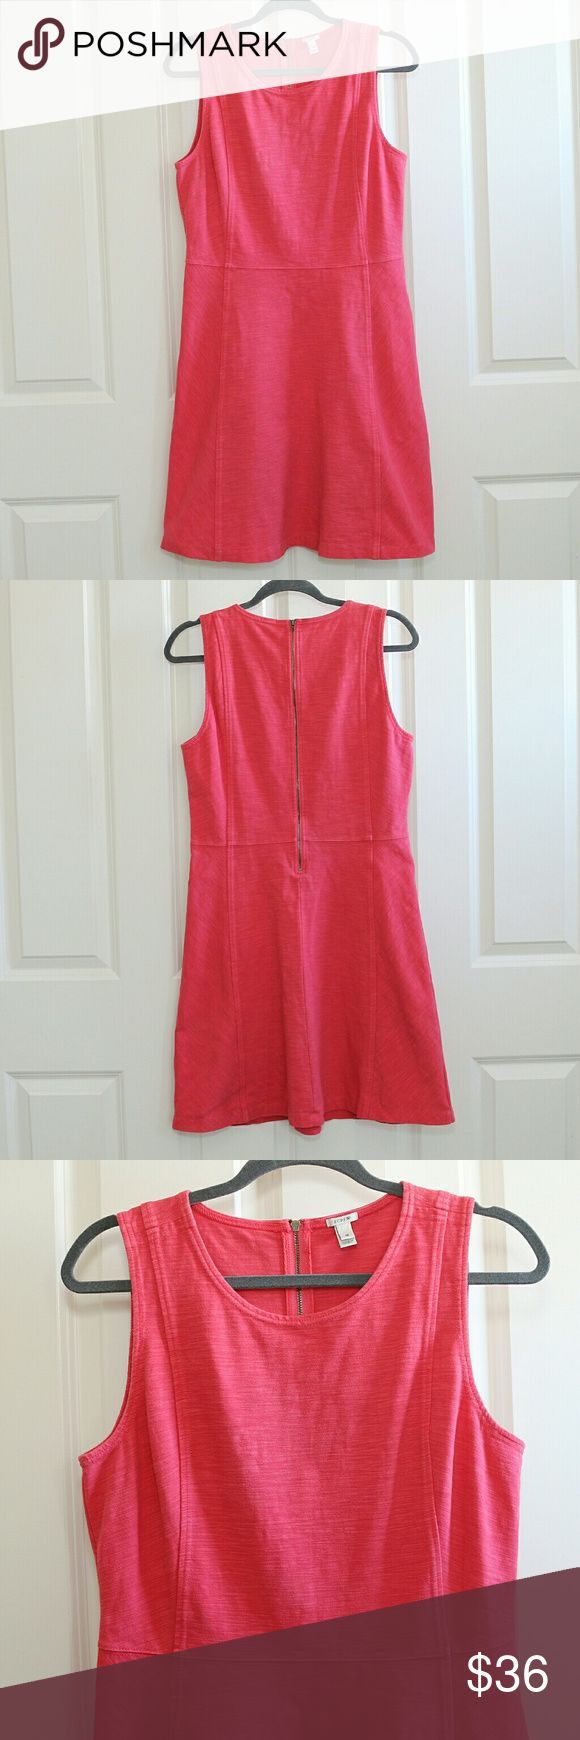 OFFER ME 50% OFF SALE/  J.Crew Pink Dress J.Crew Women's Dress.  Tank / sleeveless.  A line.  Cotton and Spandex.  Stretchy material.  Zip up the back.  Size 10.  About 18 inches armpit to armpit.  About 36 inches shoulder to hem.  Waist measures 16 inches from side to side.  Color is a deep pink / almost coral.  Has gentle wear.  Nothing excessive.  No stains or holes. J. Crew Dresses